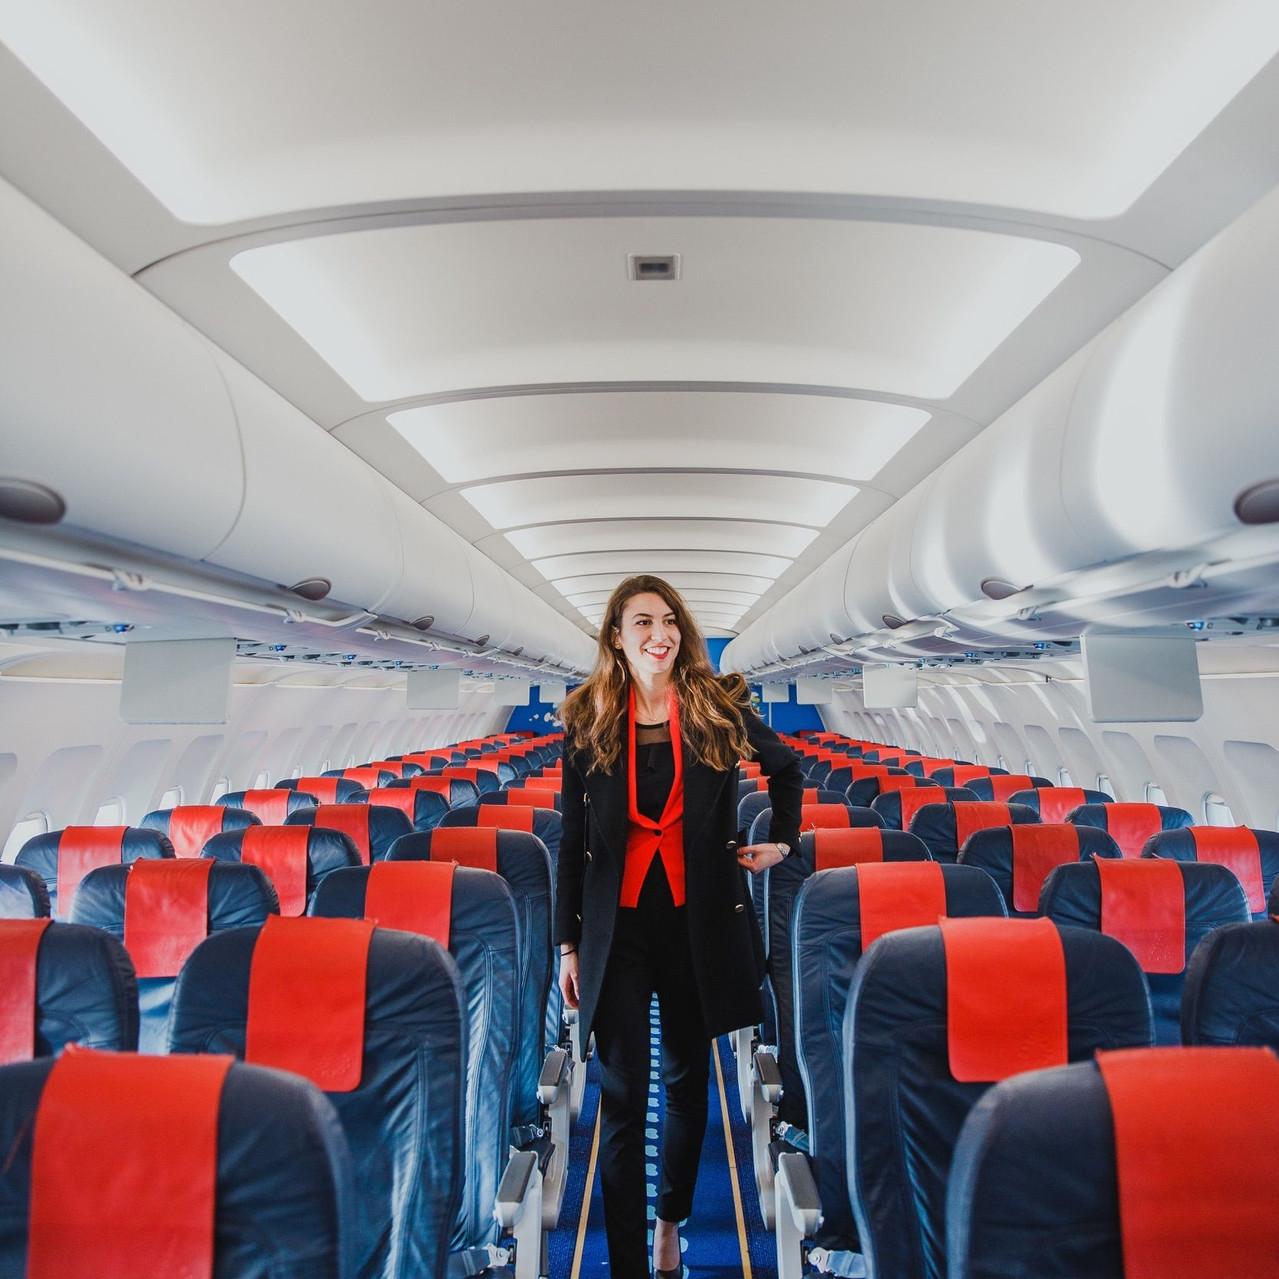 002_Brussels Airlines